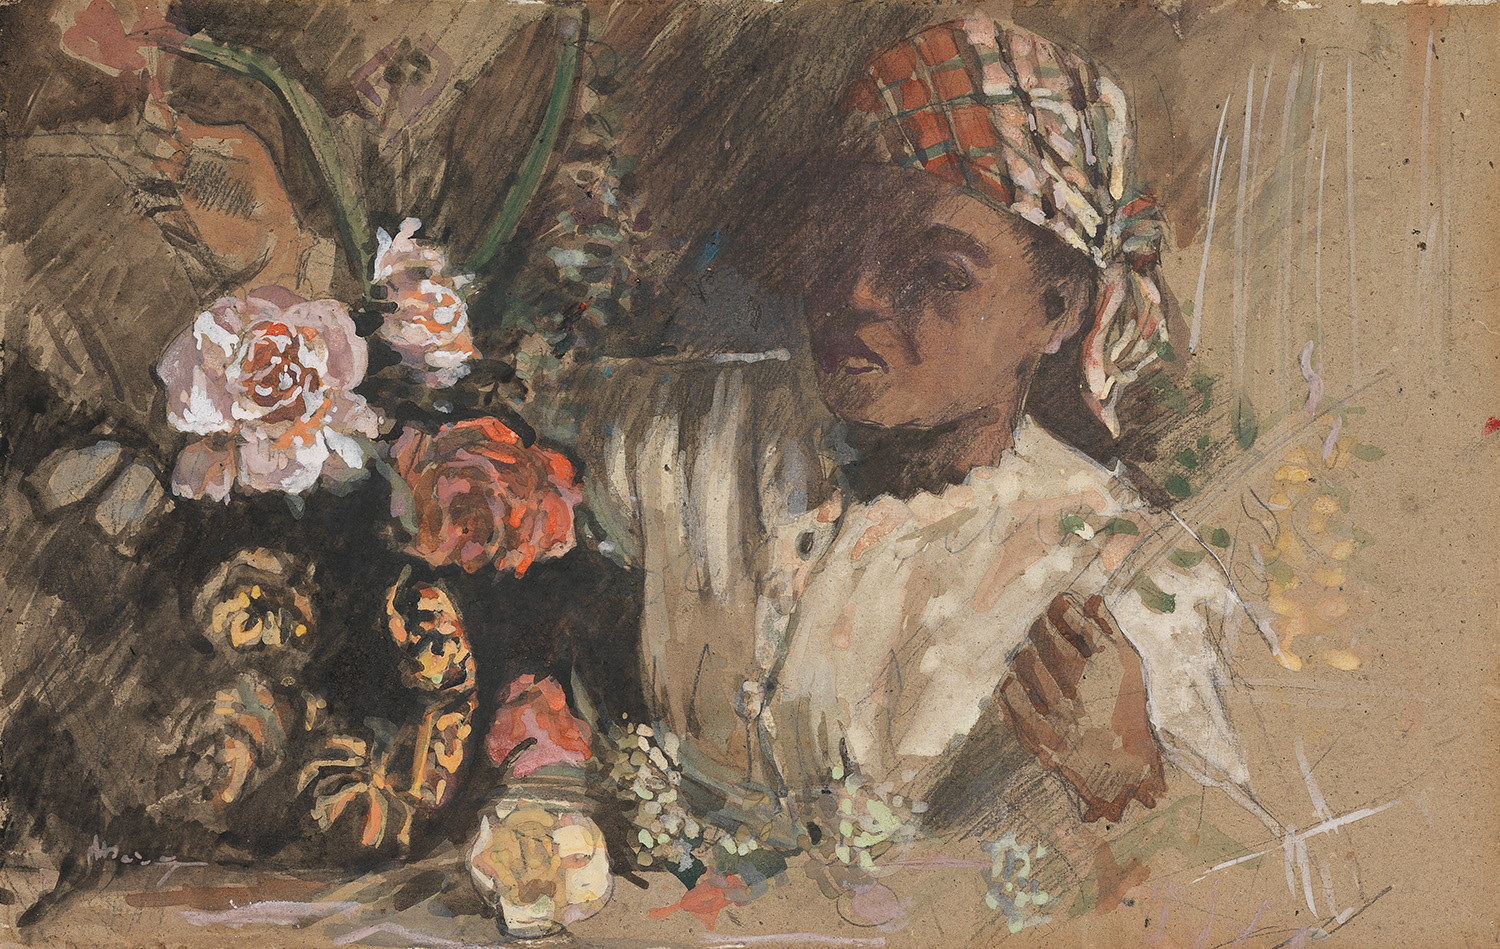 Black woman with peonies. Bazille, Frédéric (French, 1841-1870). Watercolour, gouache, black chalk and graphite on card, height, card, 335 mm, width, card, 525 mm, circa 1870. Acquisition: The Gow Fund, National Art Collections Fund, V&A. Purchase Grant Fund.